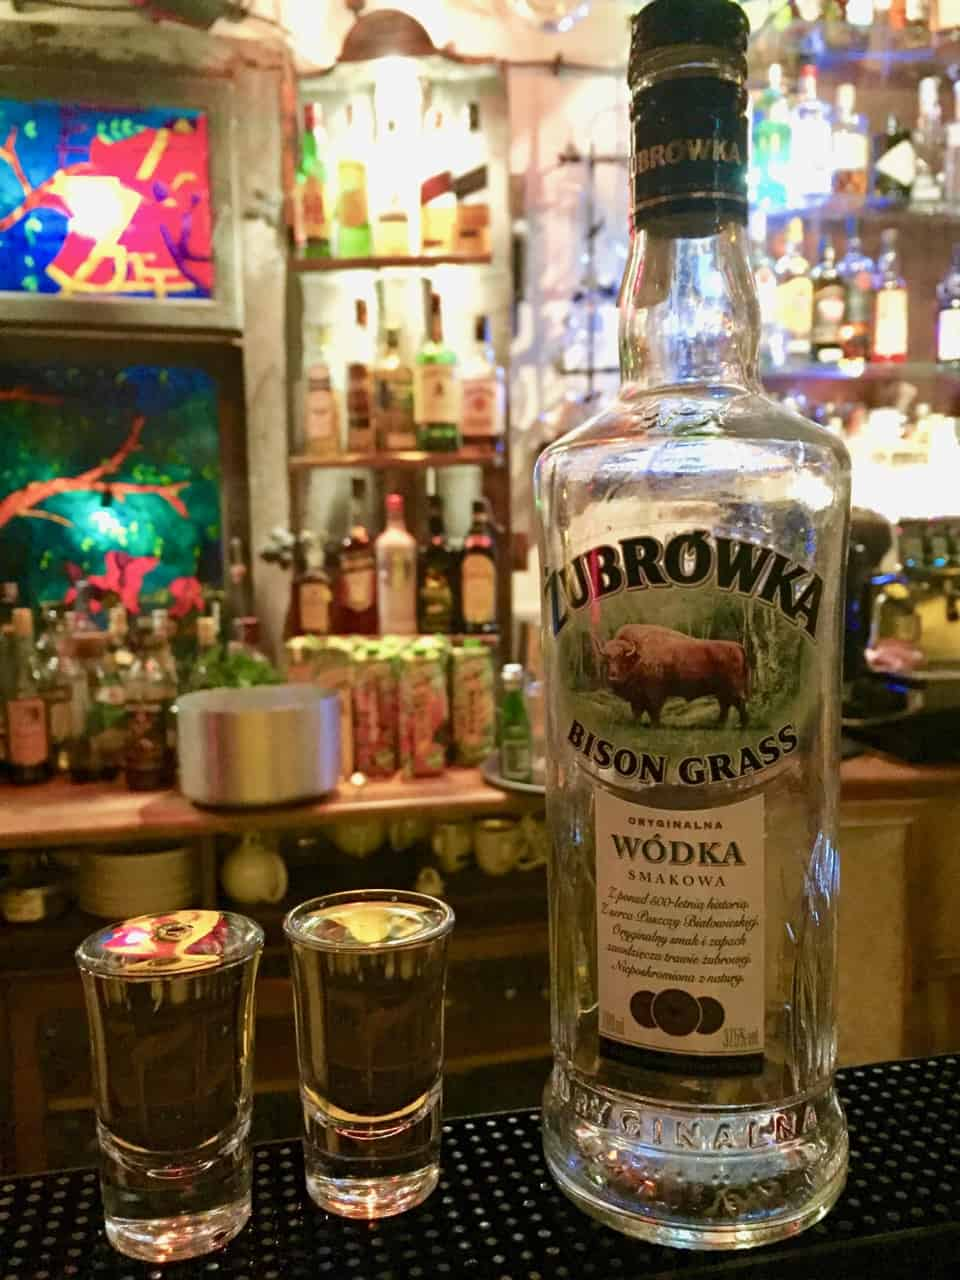 zubrowka-bison-grass-vodka photo